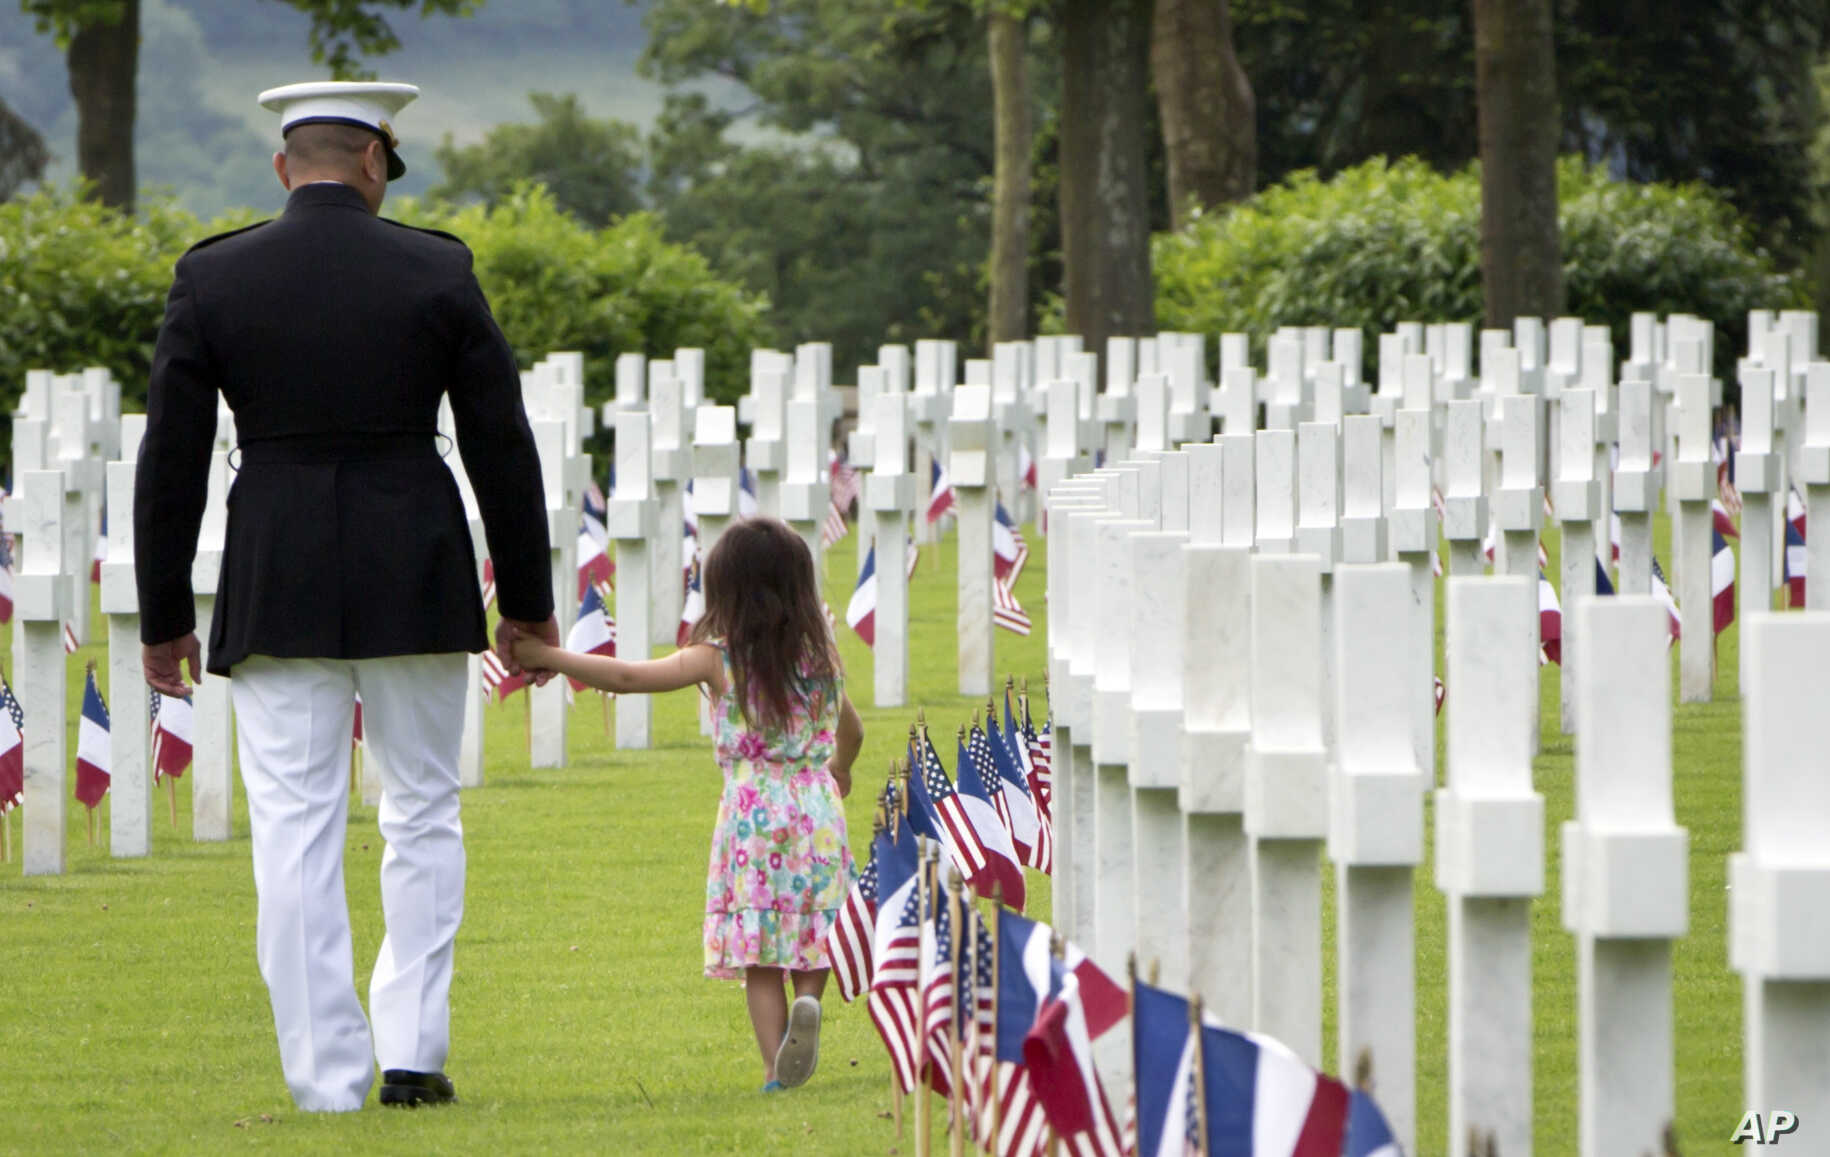 A U.S. Marine Corps soldier holds hands with a small girl as they walk among headstones of World War I dead at a Memorial Day commemoration at the Aisne-Marne American Cemetery in Belleau, France, May 27, 2018.